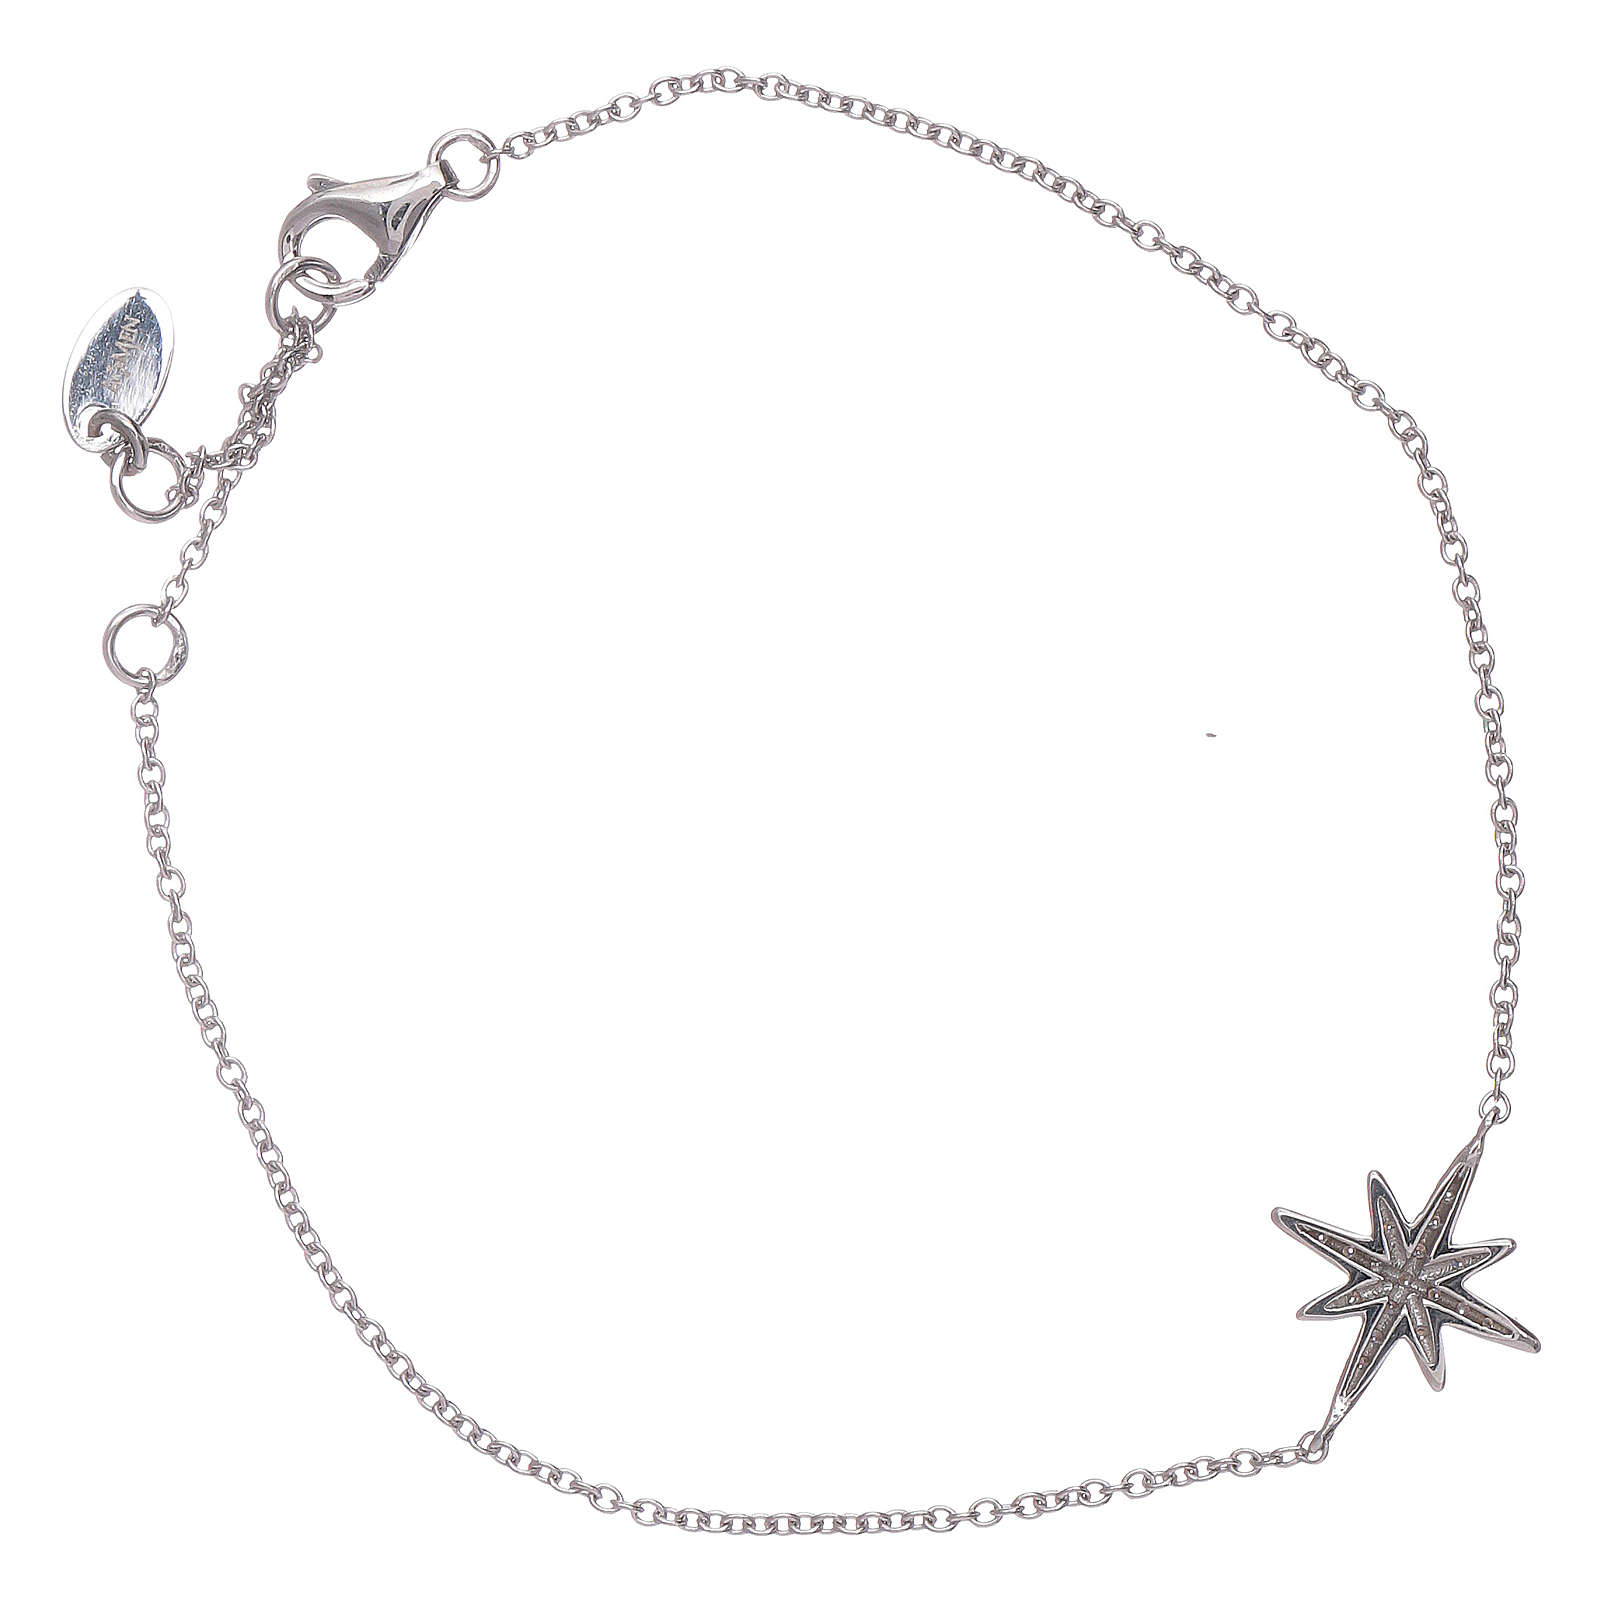 AMEN 925 sterlin silver bracelet with zircon wind rose 4